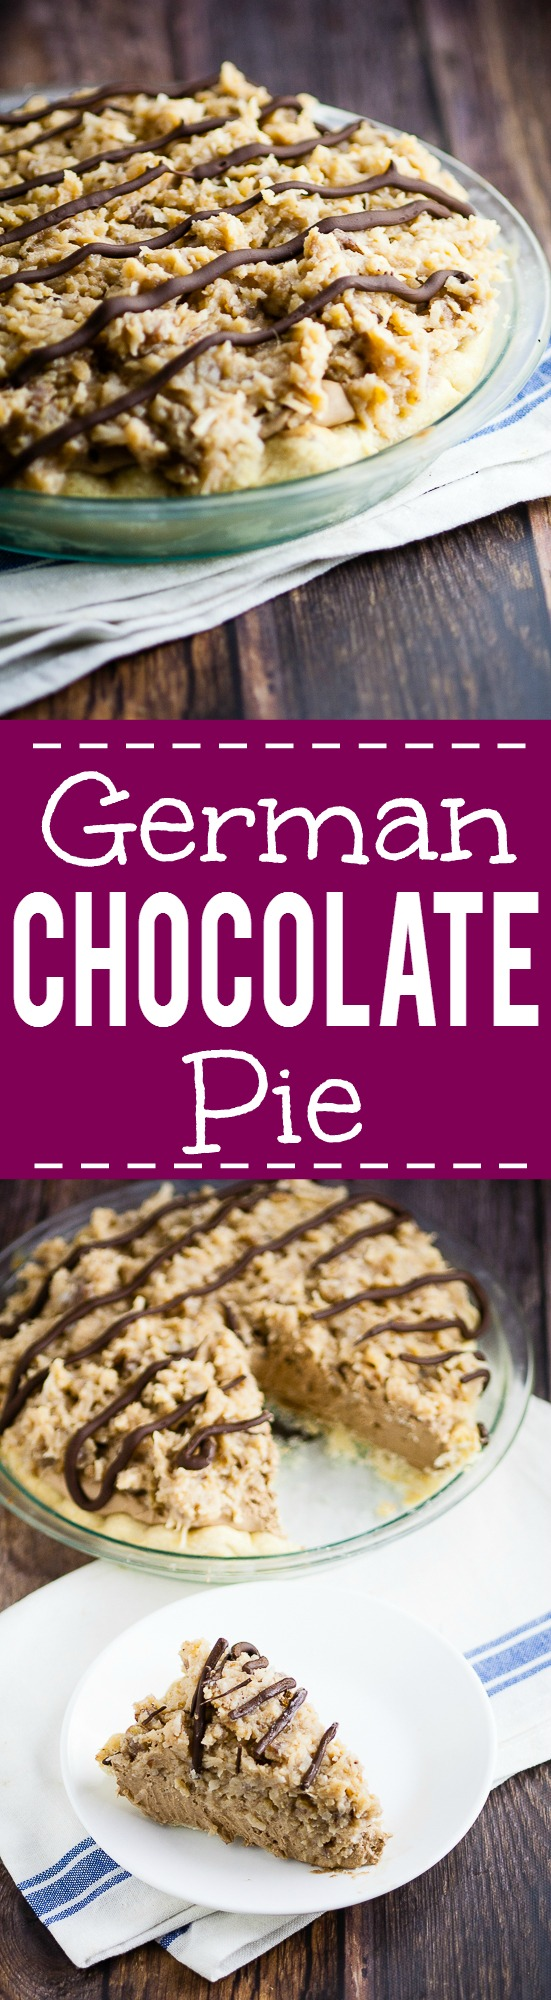 German Chocolate Pie recipe -Silky and creamy, this sweet German Chocolate Pie recipe combines a chocolate cream pie with German sweet chocolate, topped with caramel coconut pecan frosting to make a pie that's to-die-for. Such an easy pie recipe!